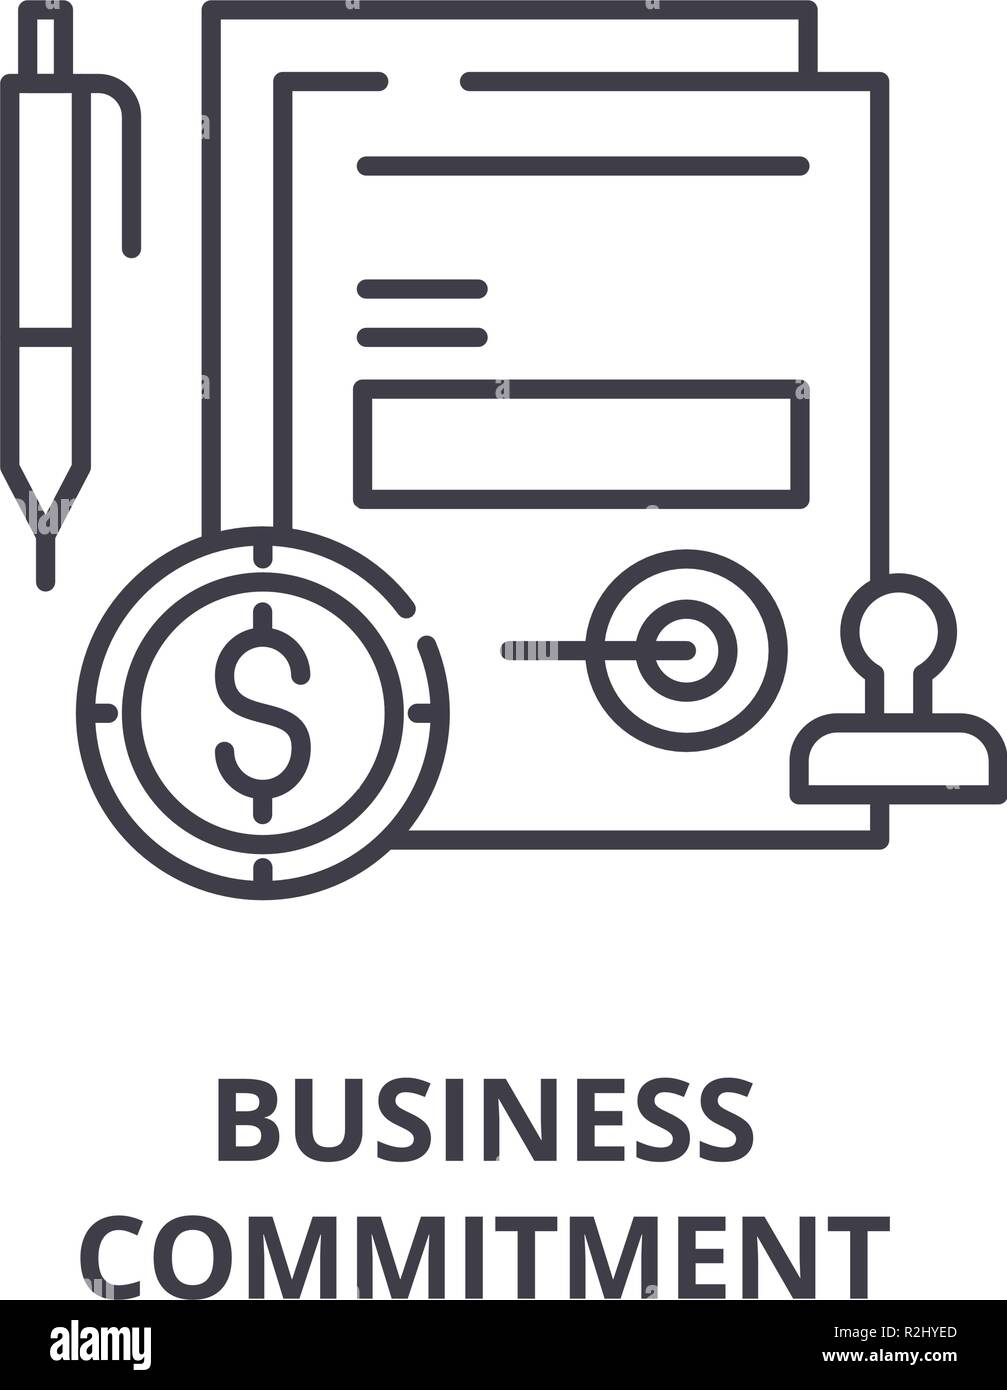 Business commitment line icon concept. Business commitment vector linear illustration, symbol, sign - Stock Image